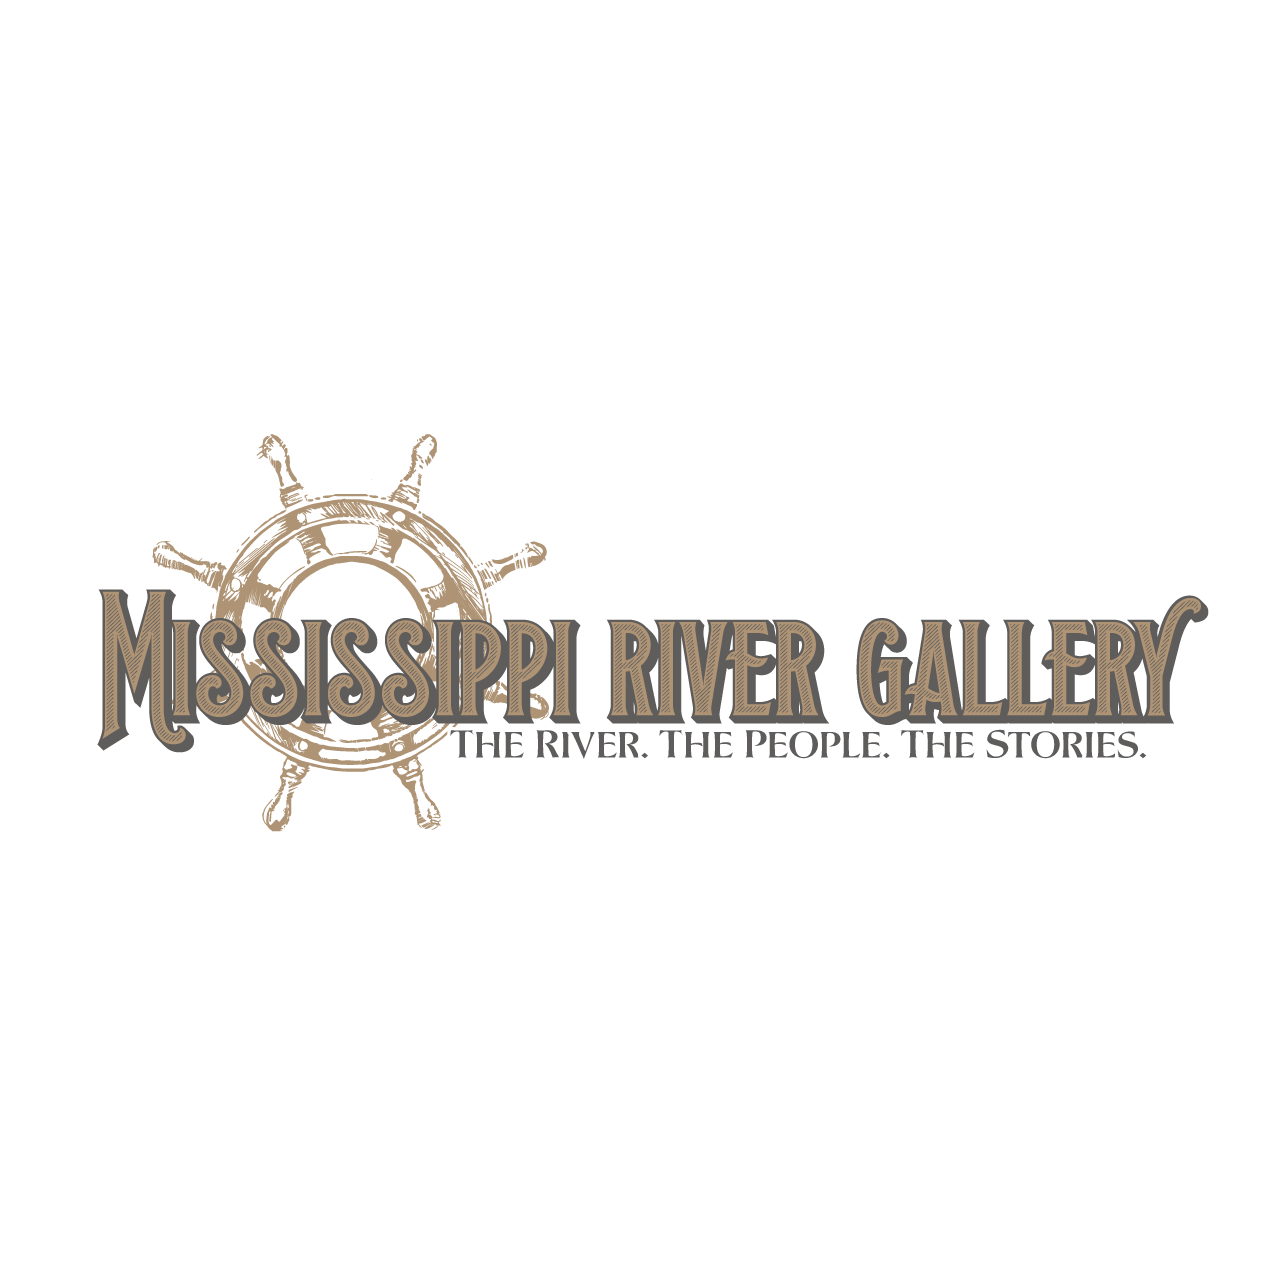 Mississippi River Gallery